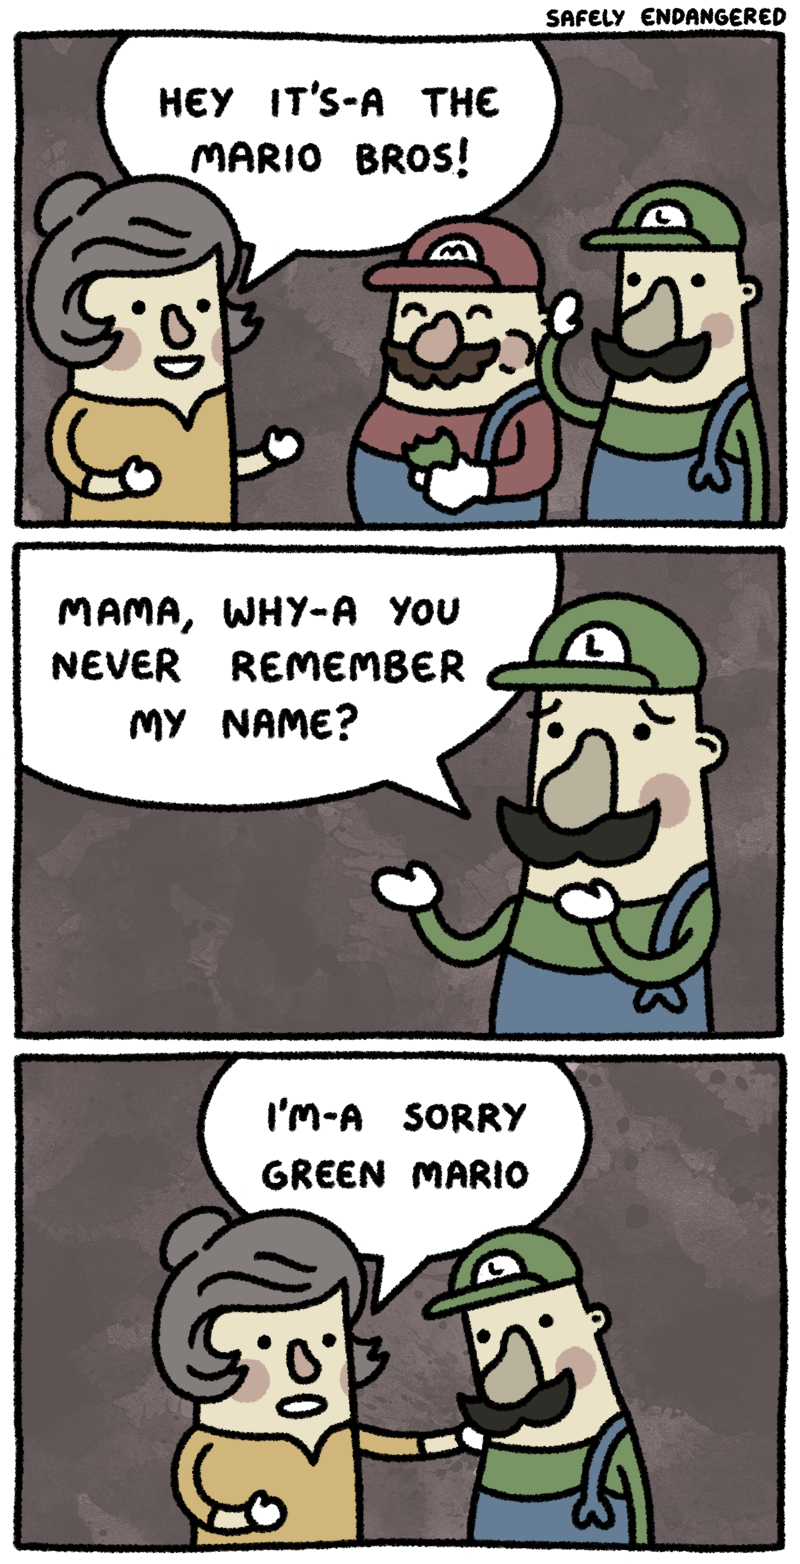 SafelyEndangered Mario Brothers